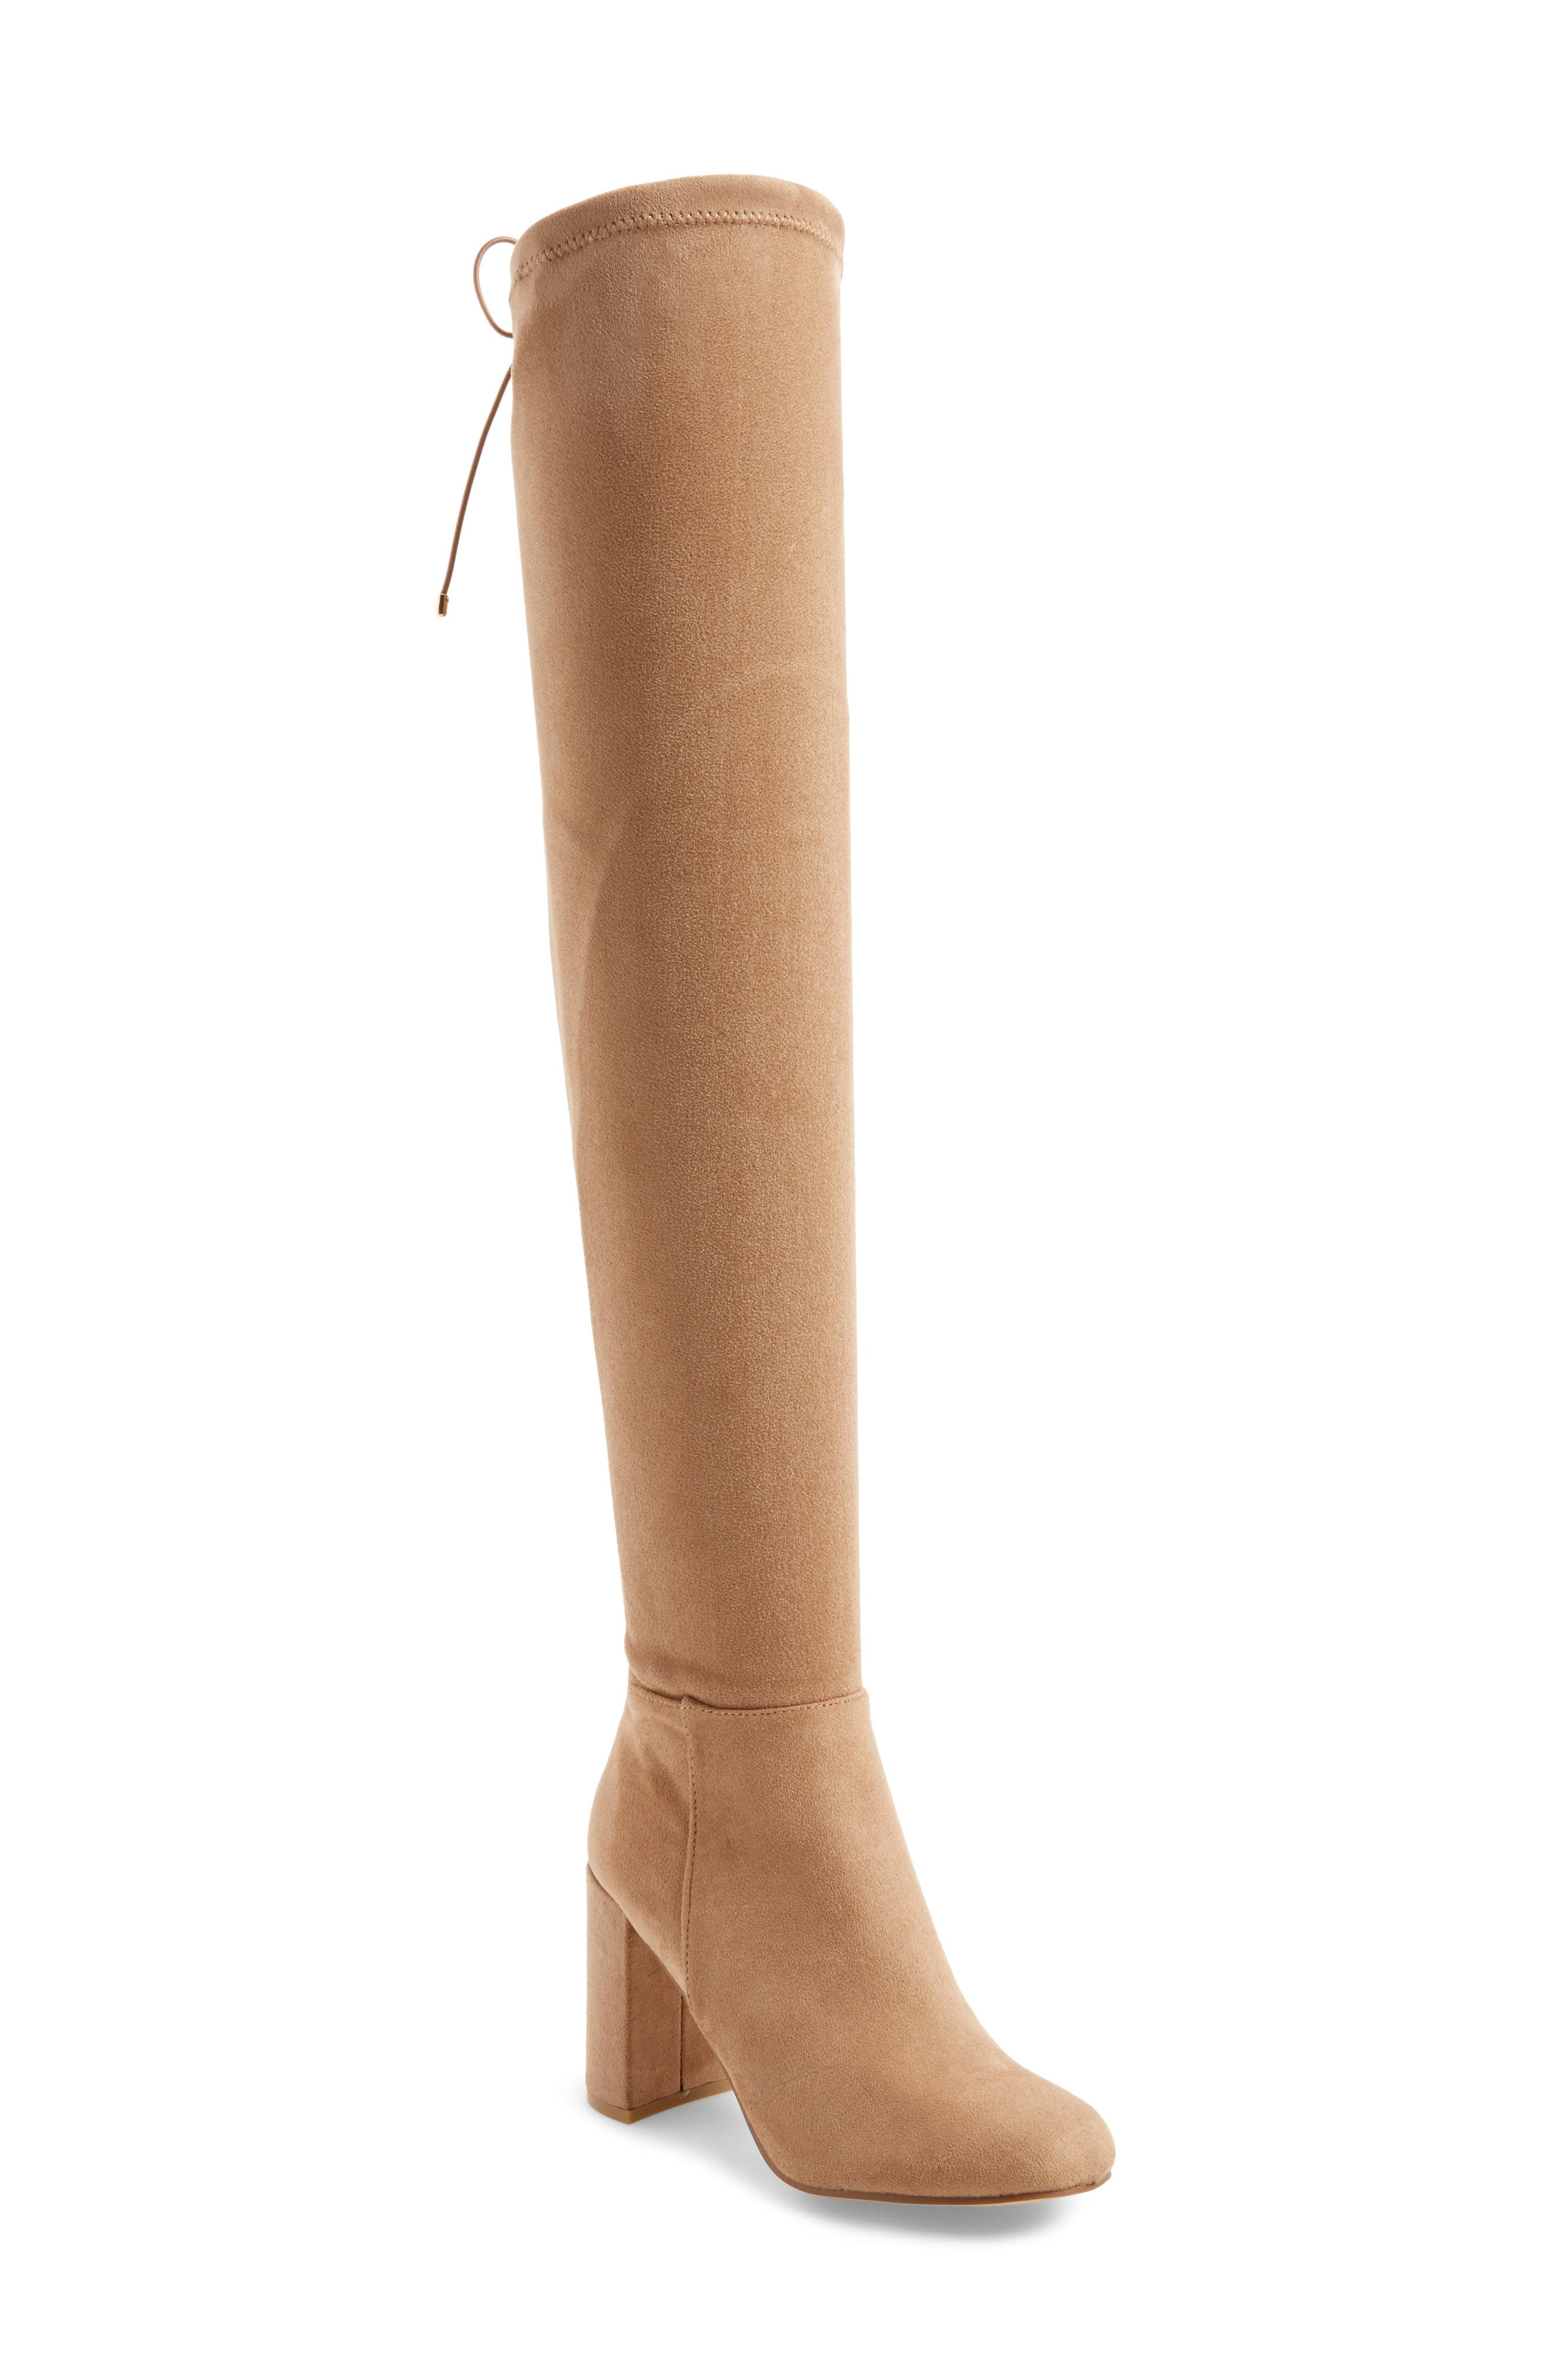 Alternate Image 1 Selected - Chinese Laundry Krush Over the Knee Boot (Women)